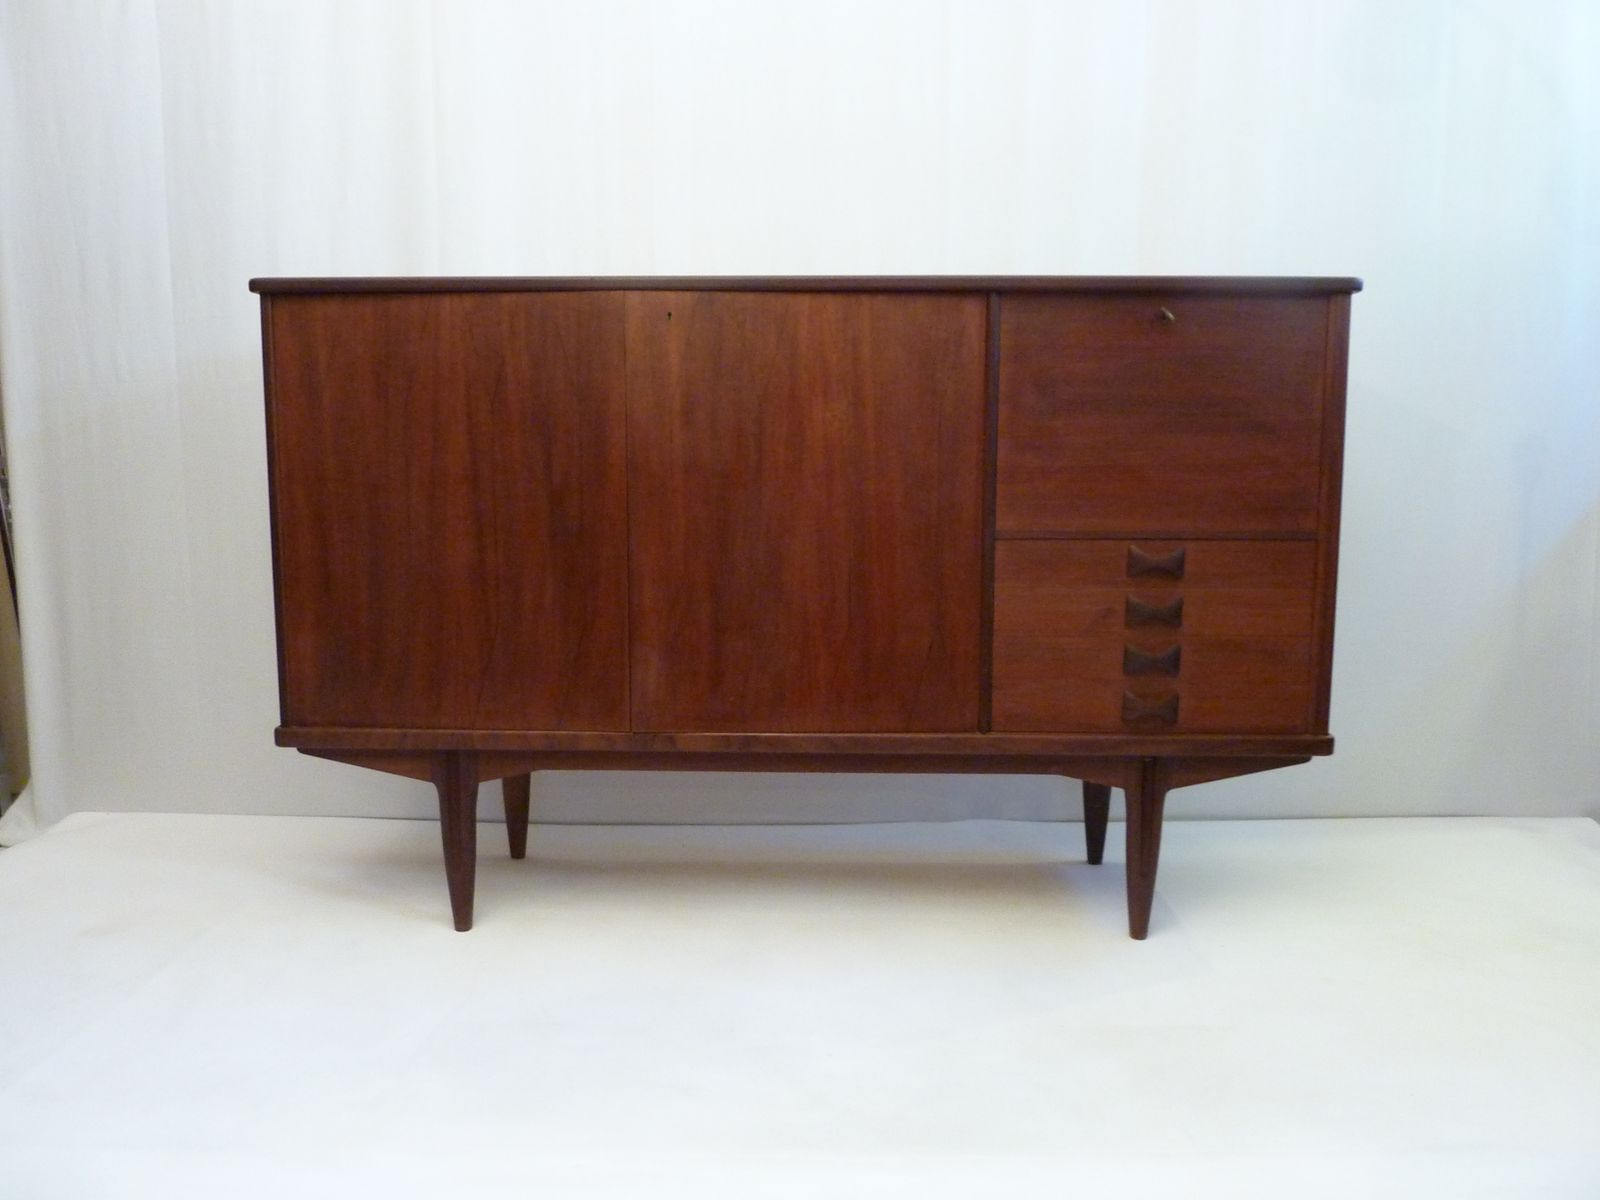 schwedisches mid century sideboard mit bar bei pamono kaufen. Black Bedroom Furniture Sets. Home Design Ideas